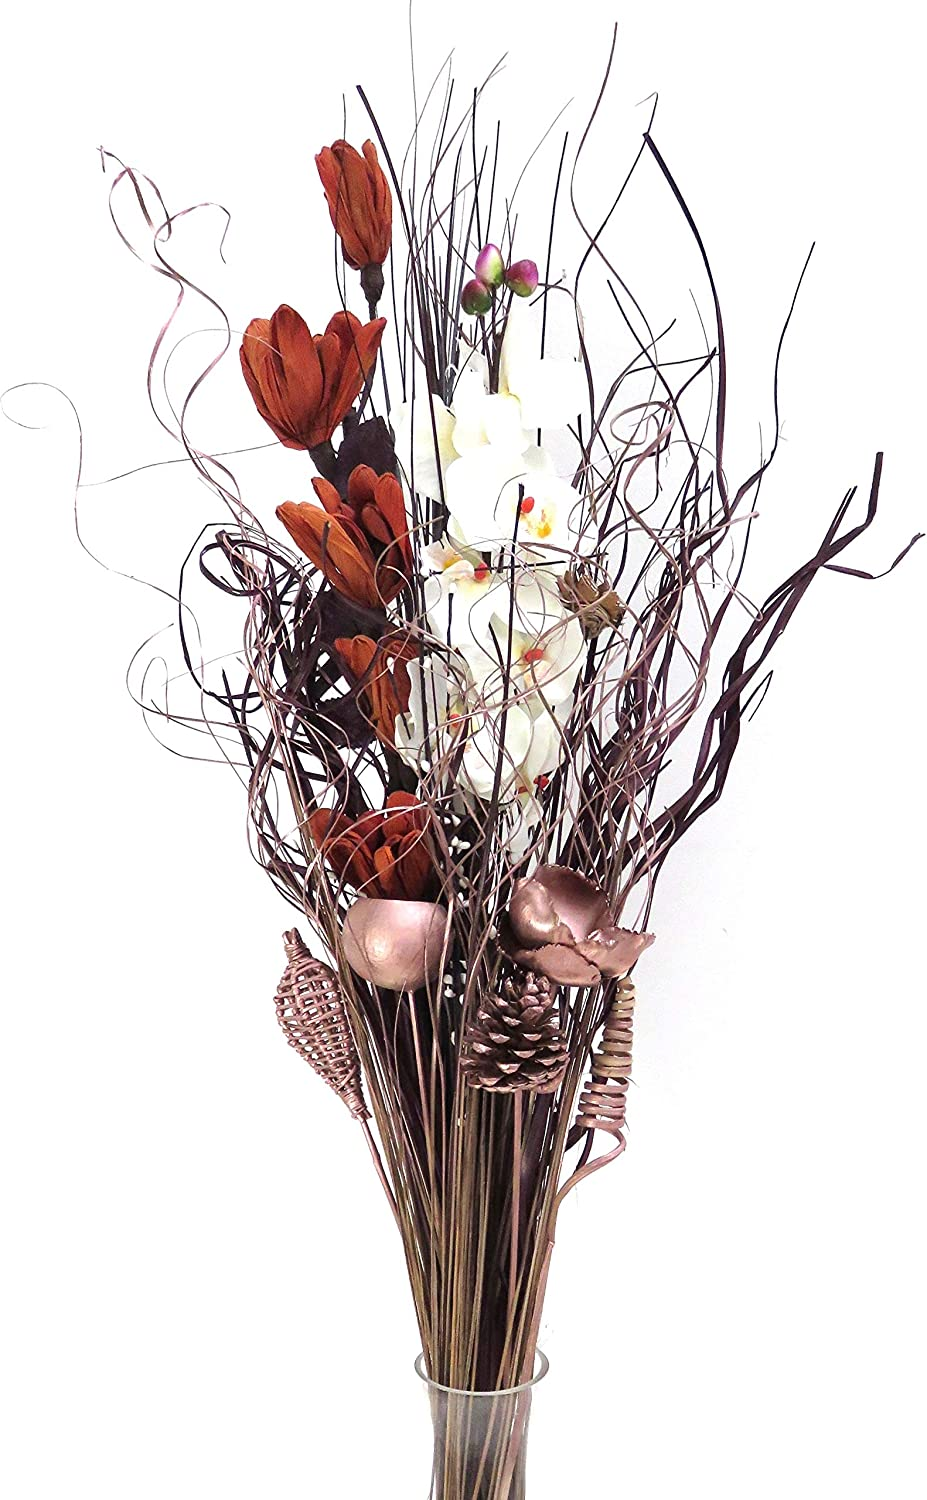 Dried Artificial Flower Bouquets 85cm Tall Ready For A Vase Rose Gold Copper Amazon Co Uk Kitchen Home